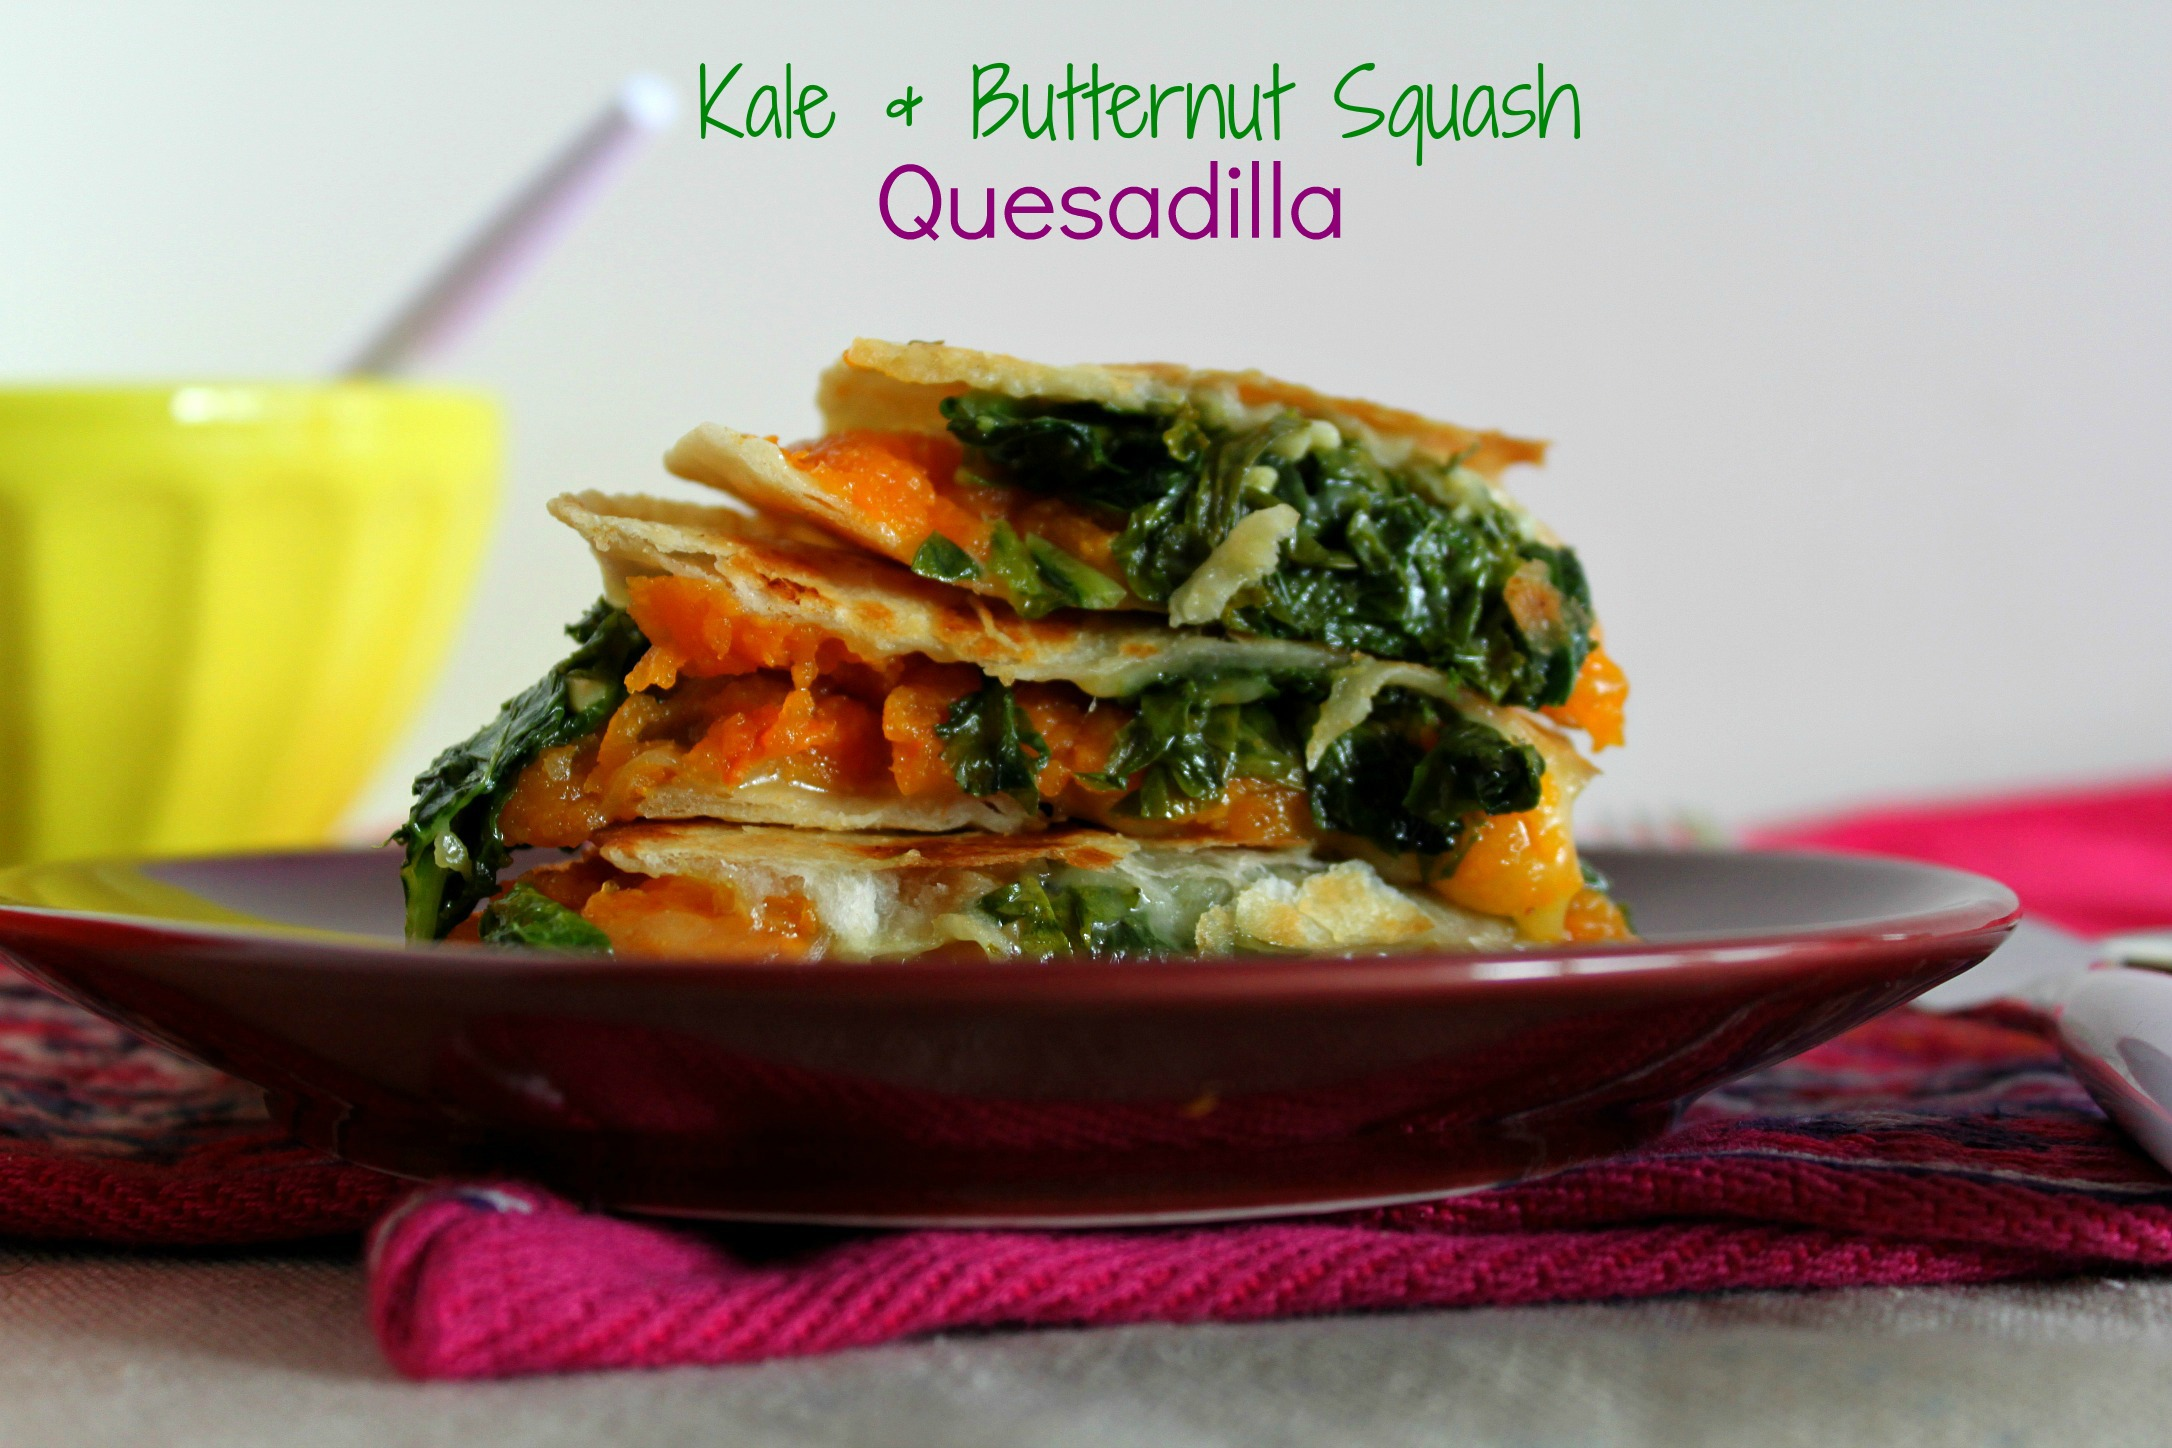 quesadilla-kale-butternut-squash-jewhungry-blog